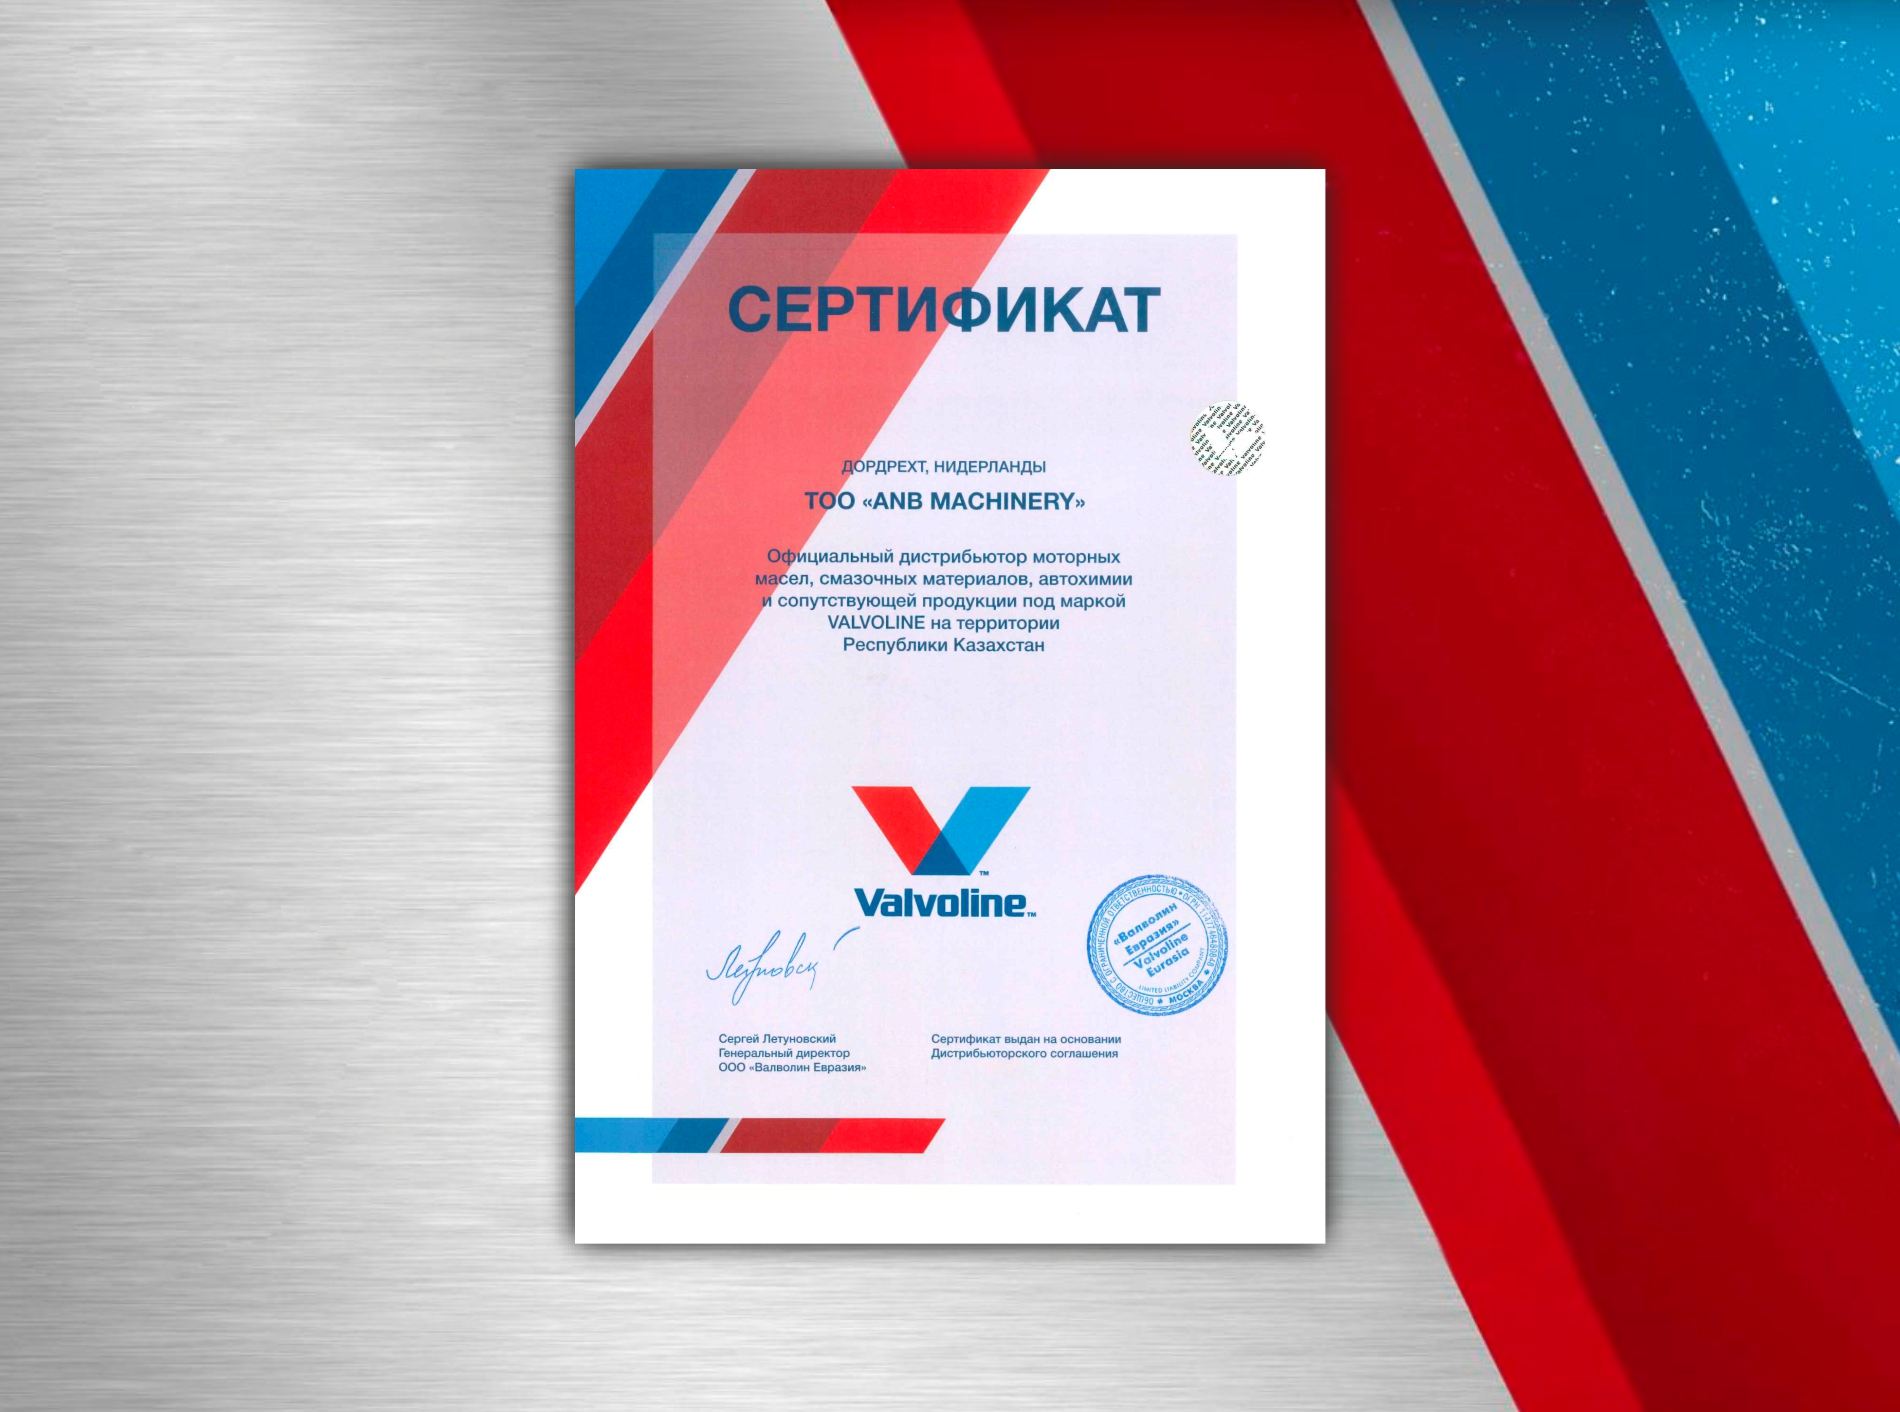 ANB MACHINERY an official distributor of Valvoline lubricants in Kazakhstan